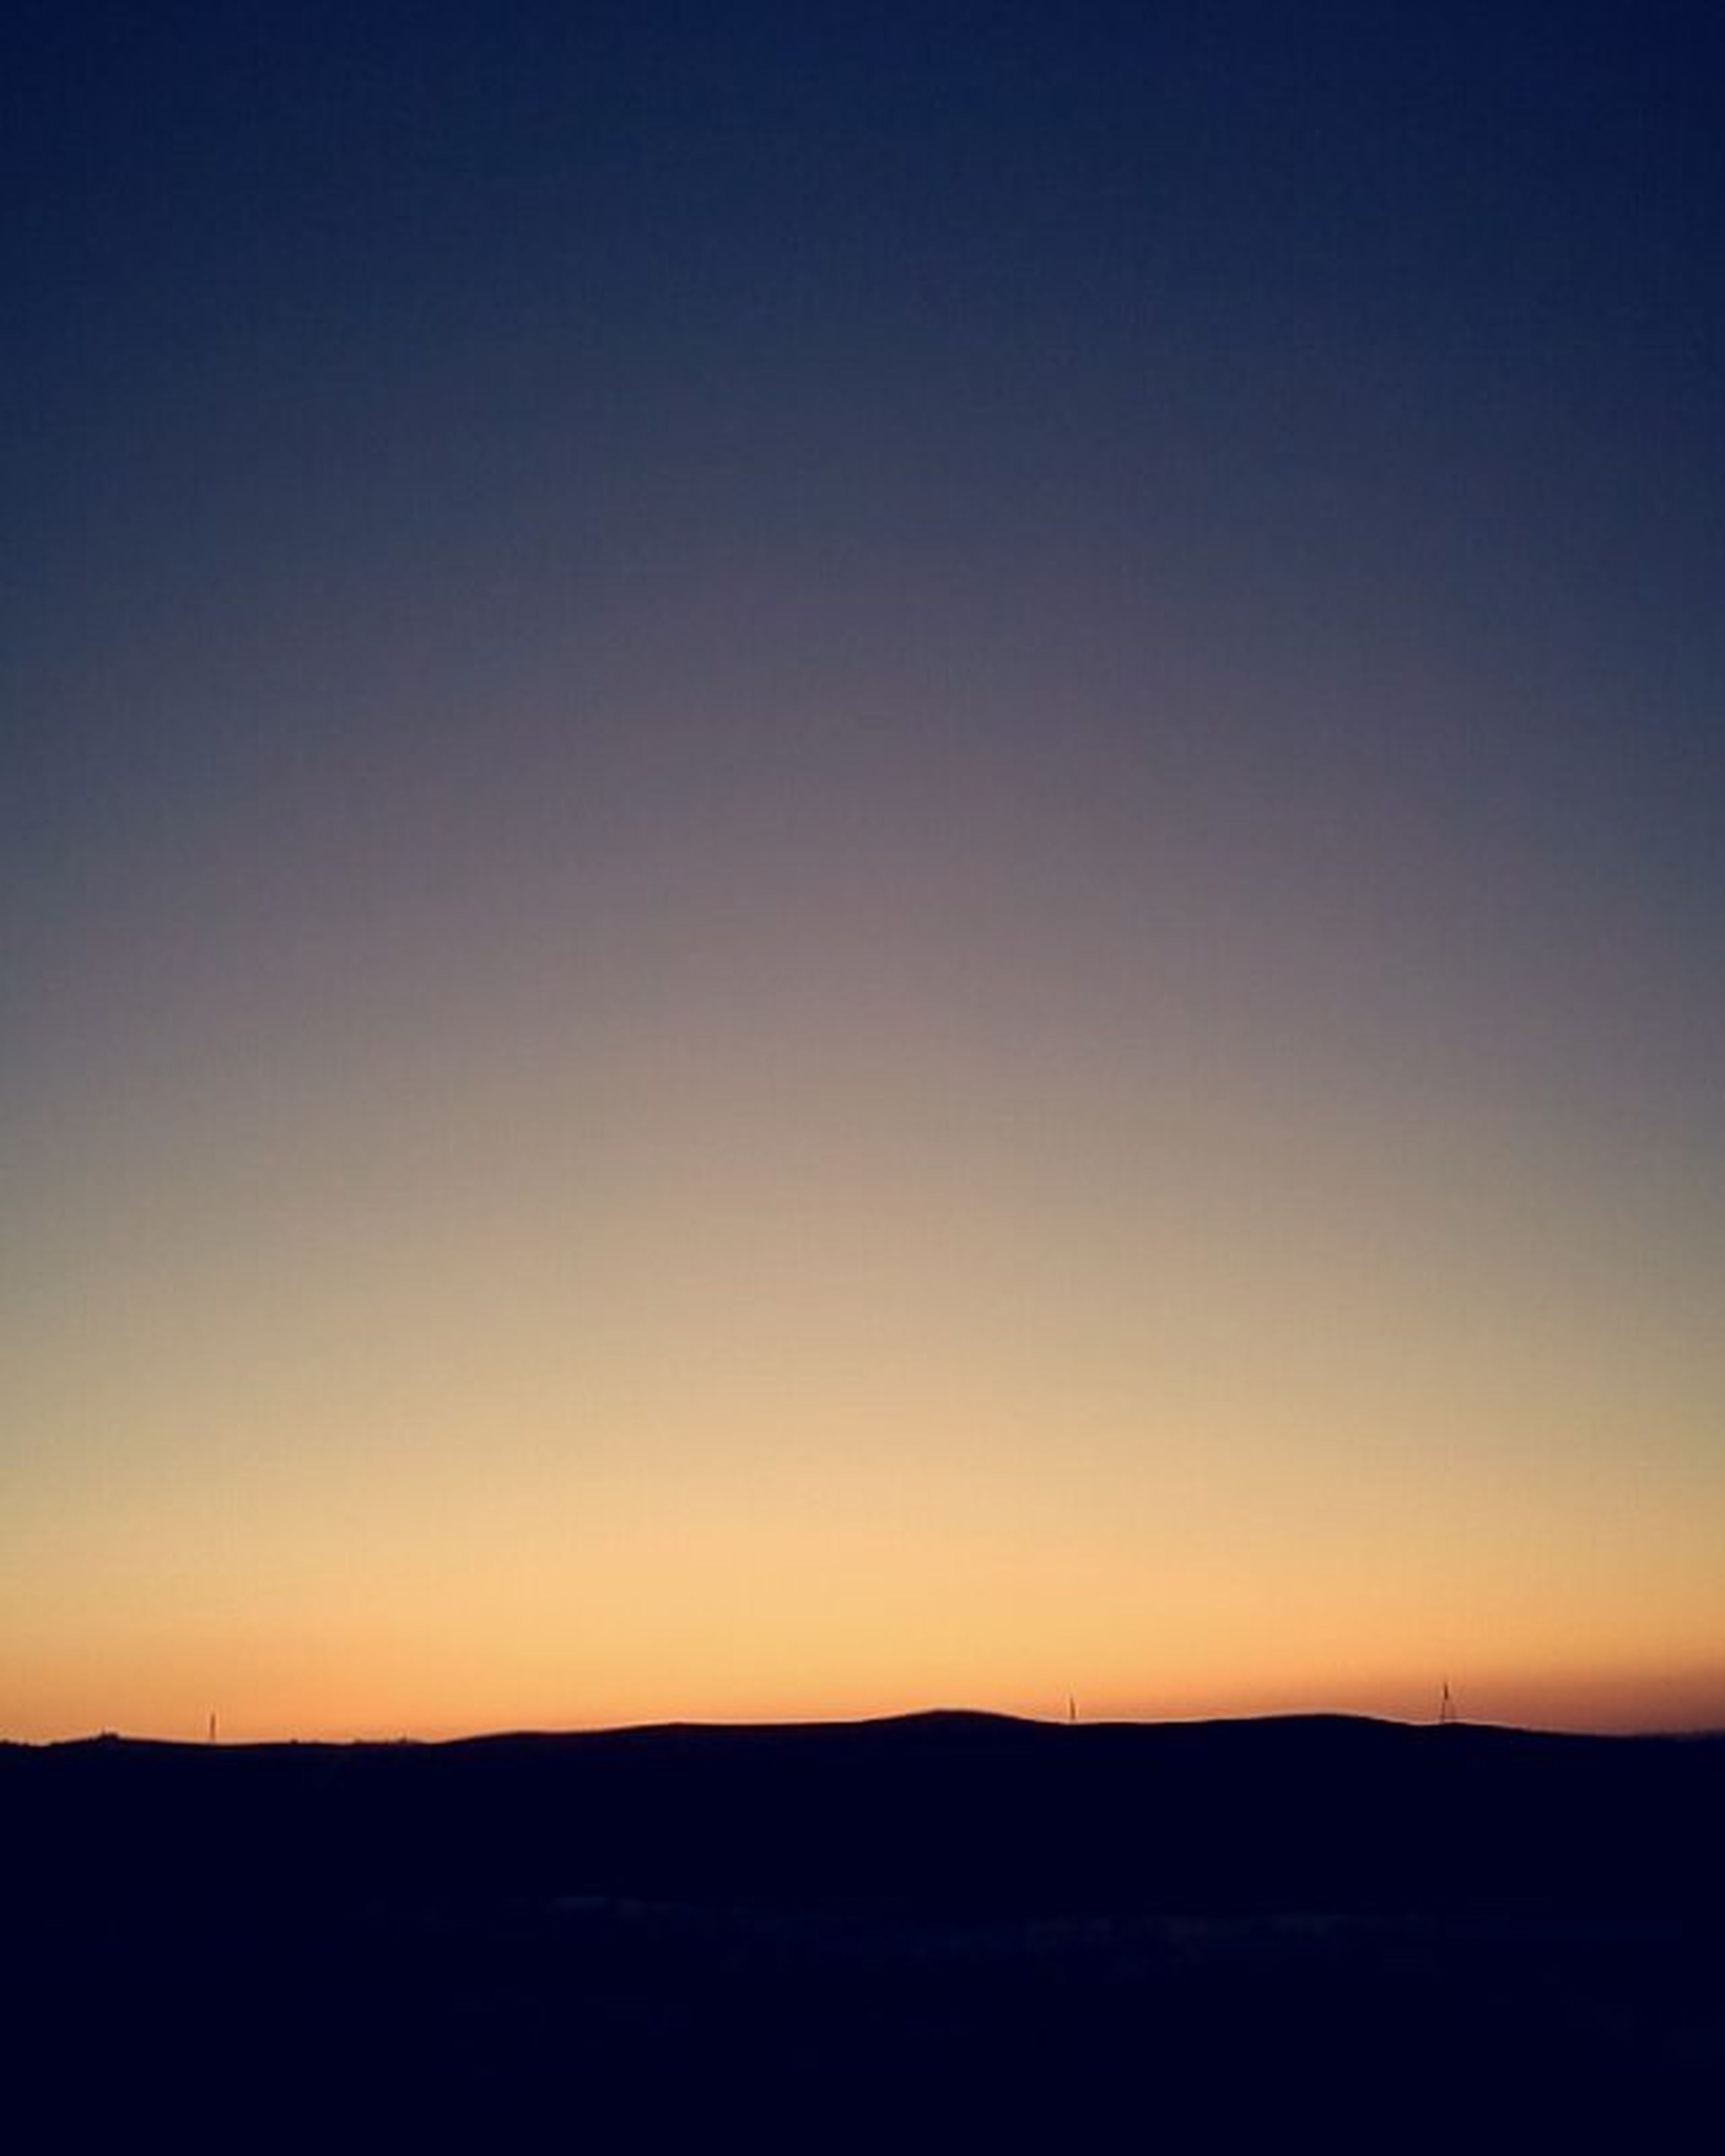 How far is the horizon? Sky Sunset Colorfulsky Clearsky Horizon Hills Rural Village Jordanvillages Clear Calm Silence Simplicity Complex Thoughts Thinking Pensive Melancholy Shadows Black Nofilter Nature Myhtc